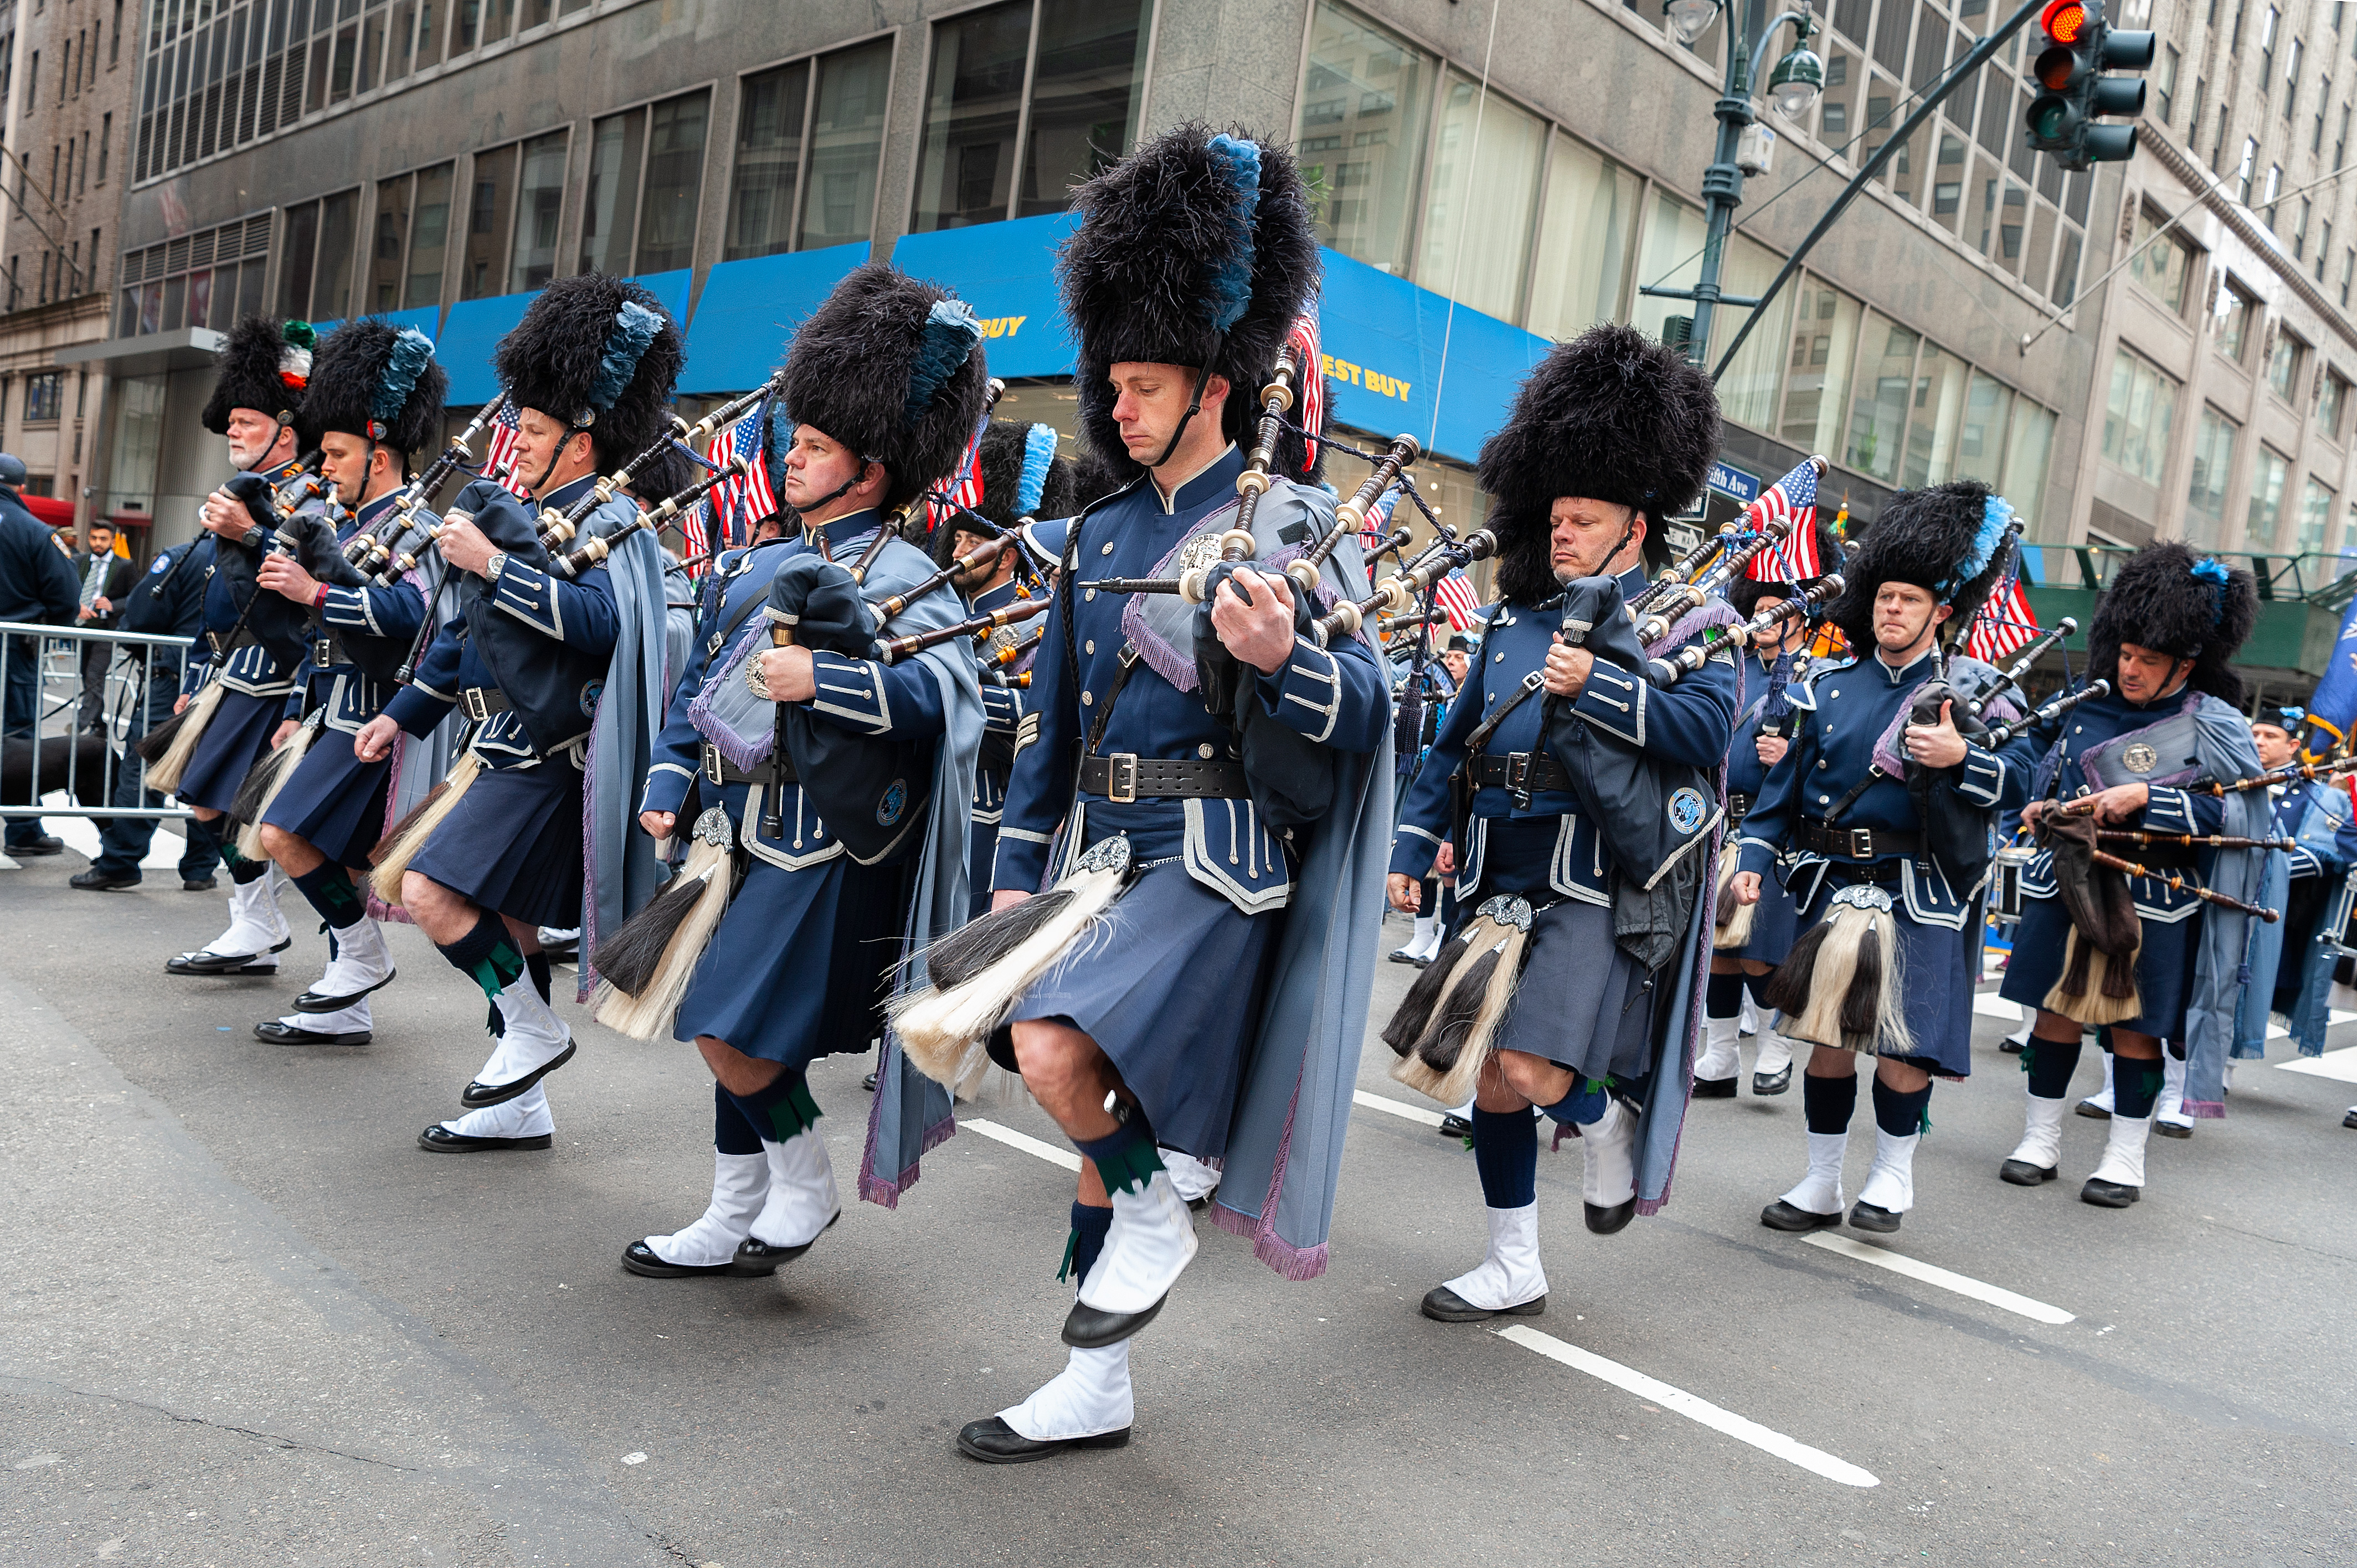 Marking the 258th St. Patricks Day Parade, the oldest and...